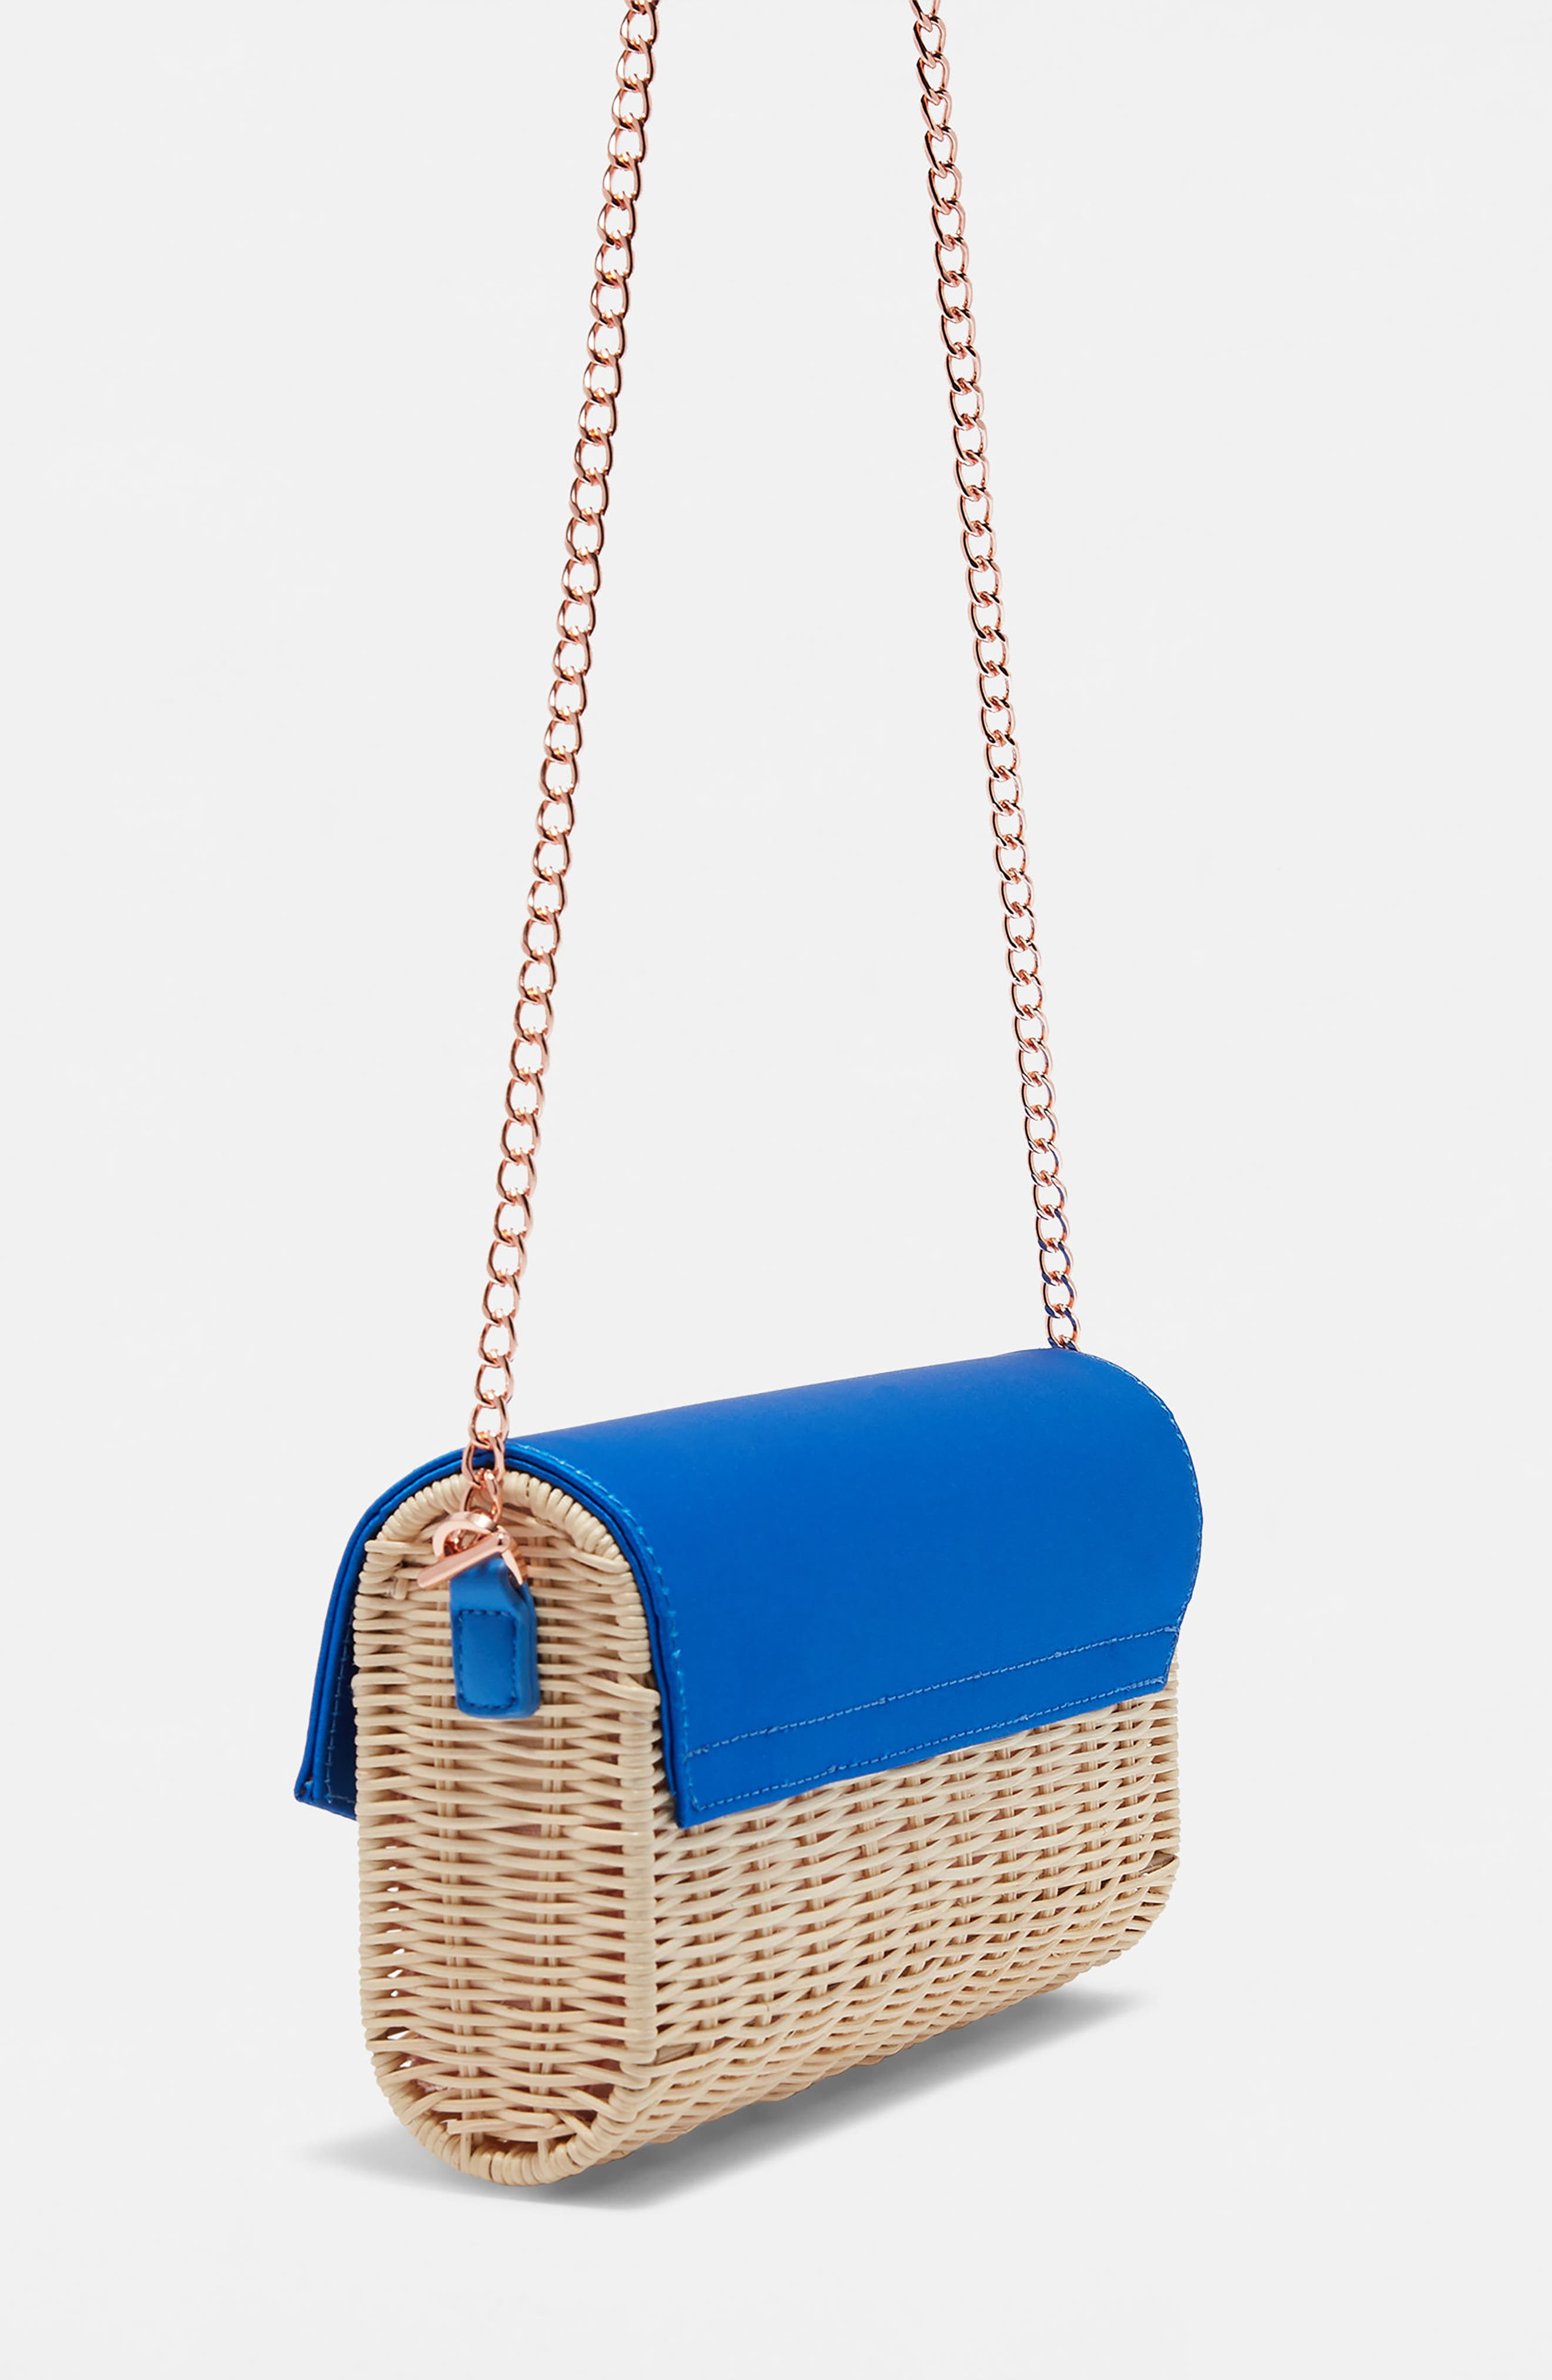 Haarley Harmony Woven Rattan Clutch,                             Alternate thumbnail 3, color,                             Bright Blue